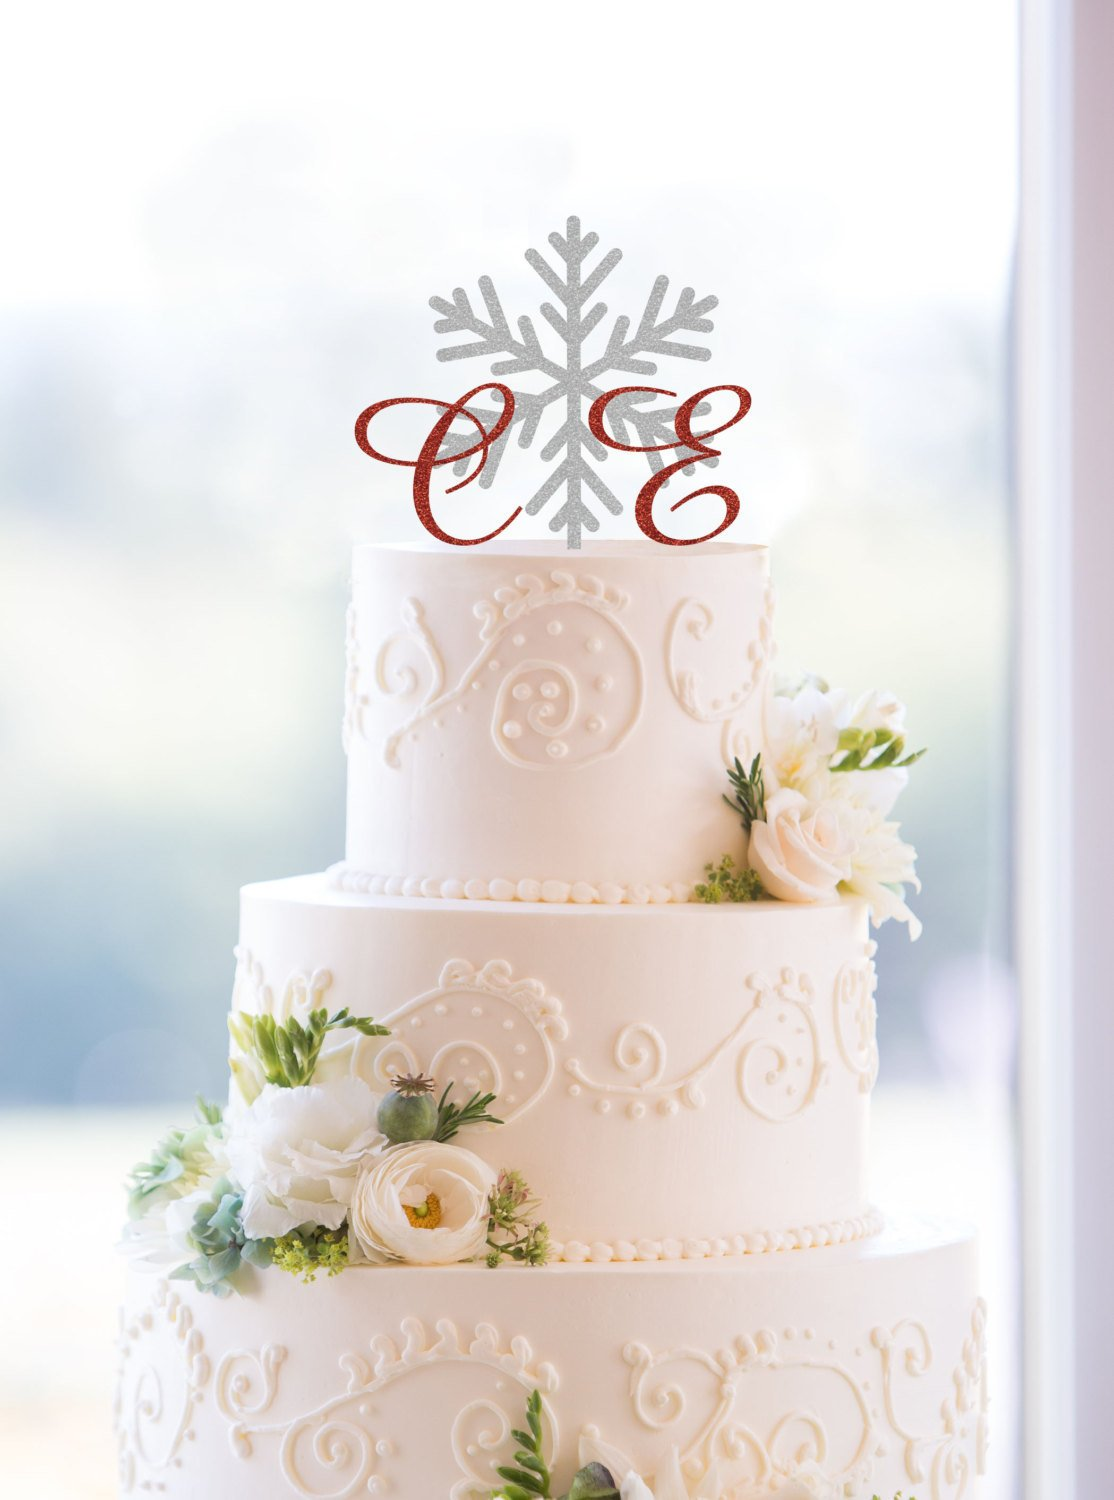 97eec6c63fe Cake Topper - Chicago Factory